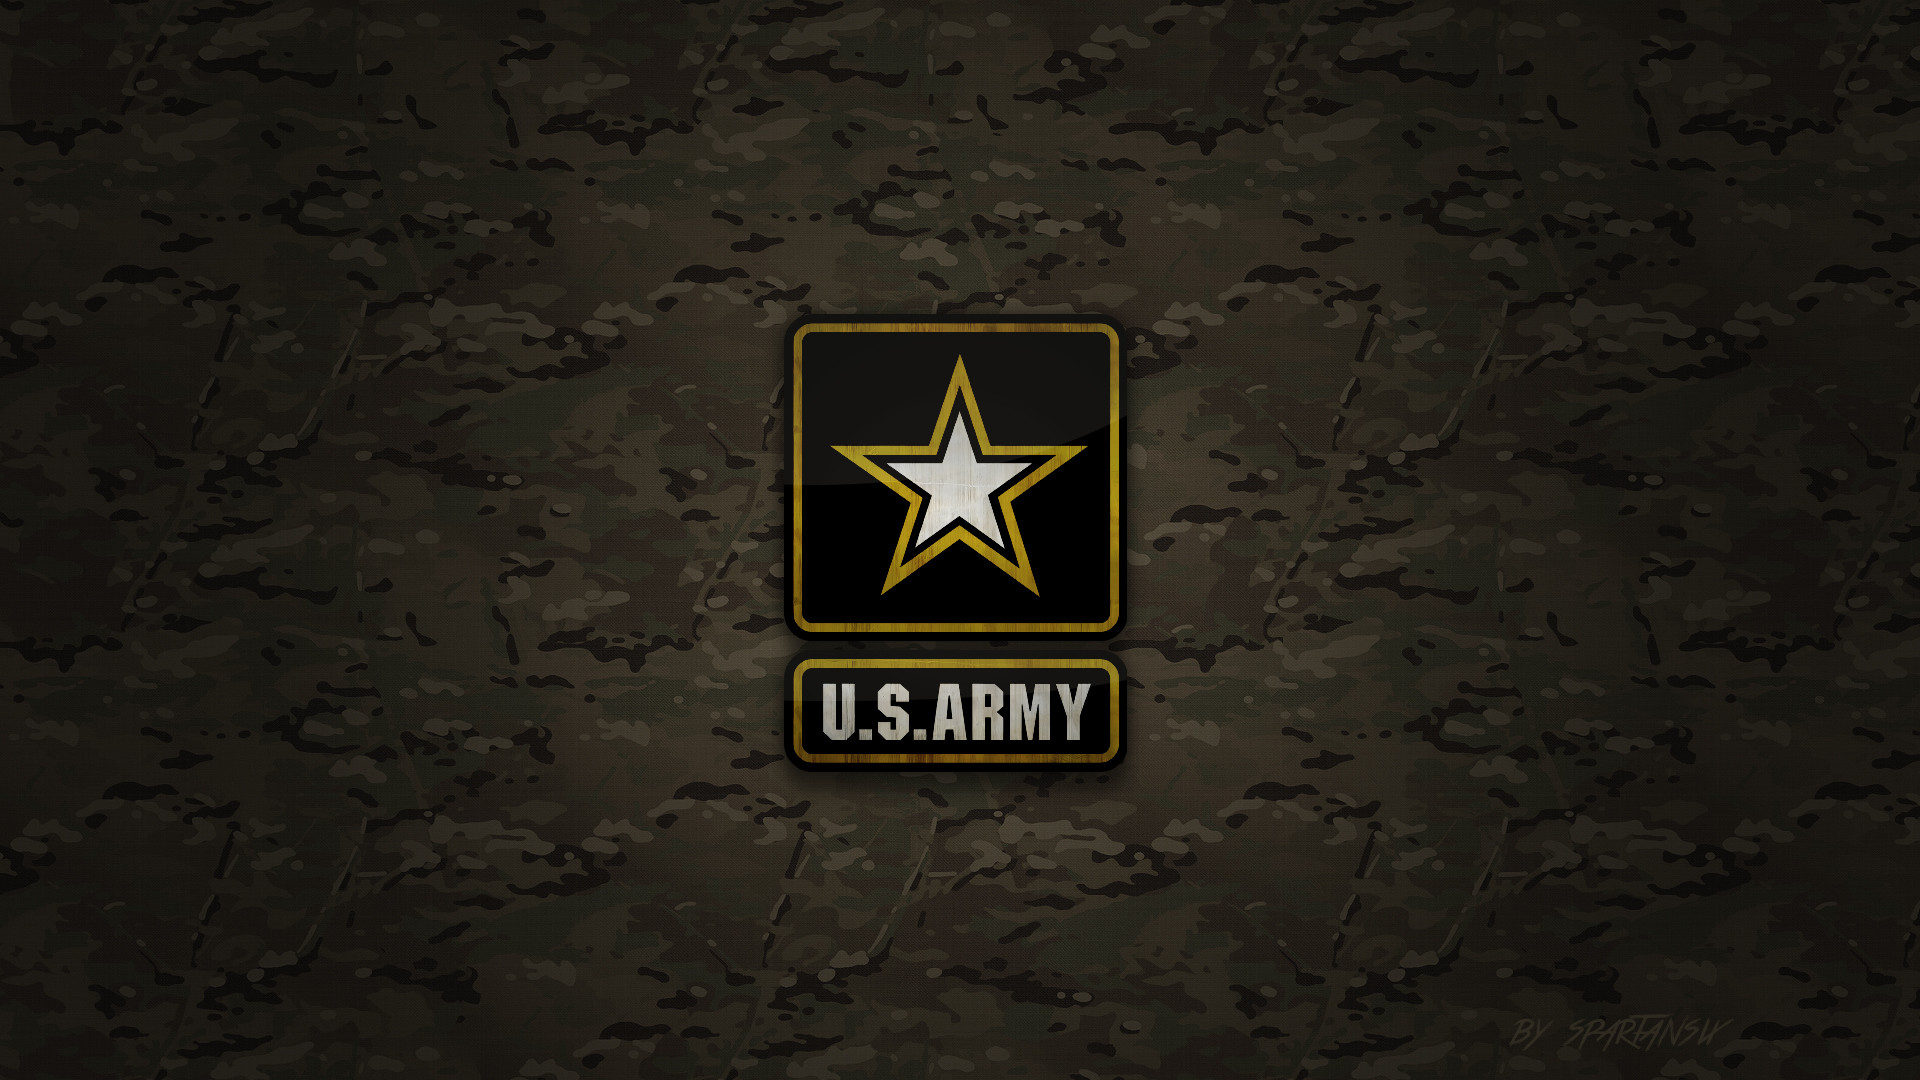 Army Strong Wallpaper 57 images 1920x1080